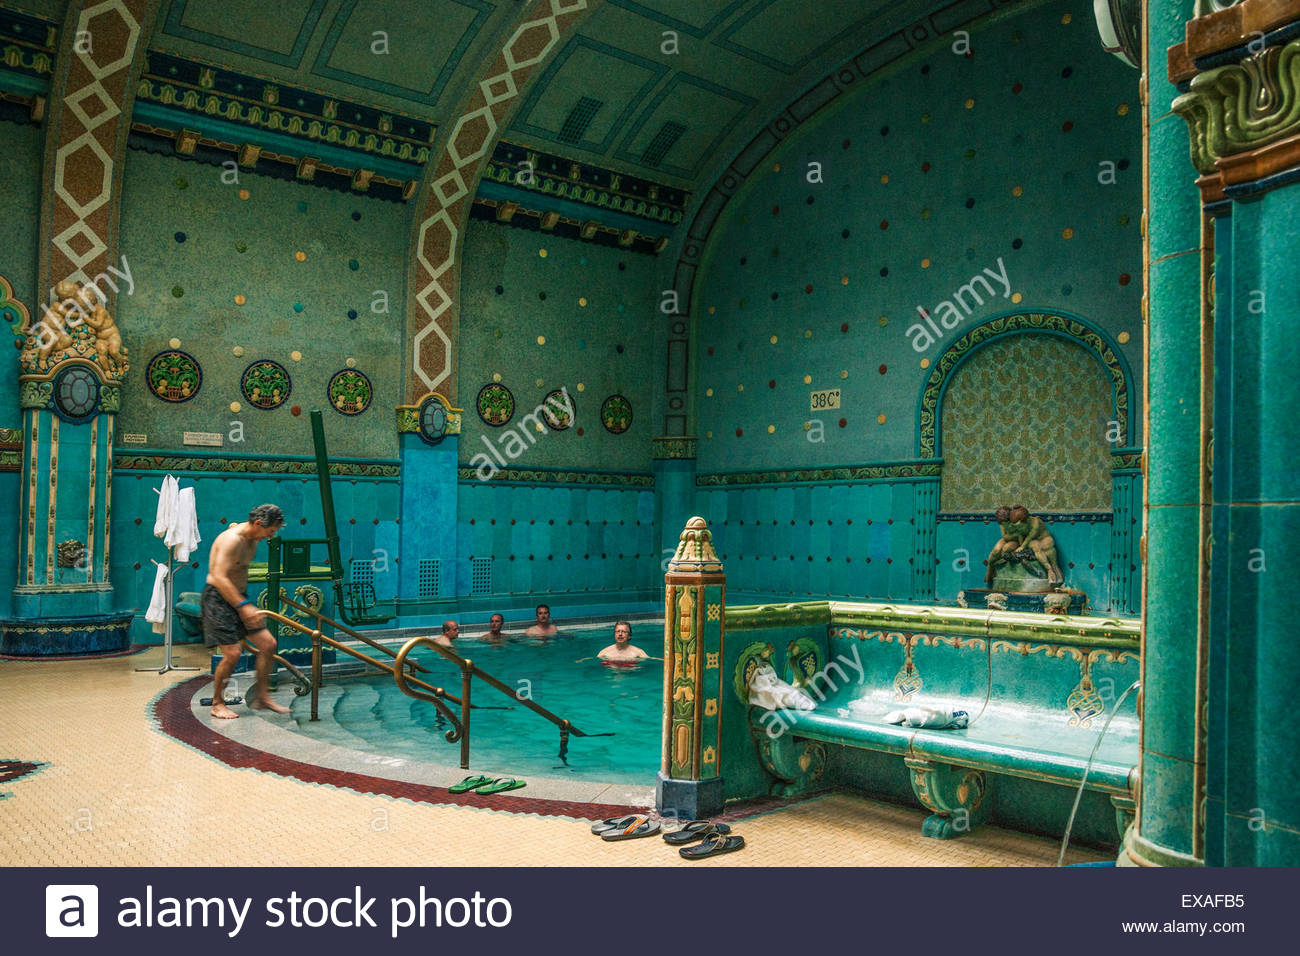 Men soak in the mineral waters at the indoor Gellert Thermal Bath (Gellert Furdo), Budapest, Hungary, Europe - Stock Image